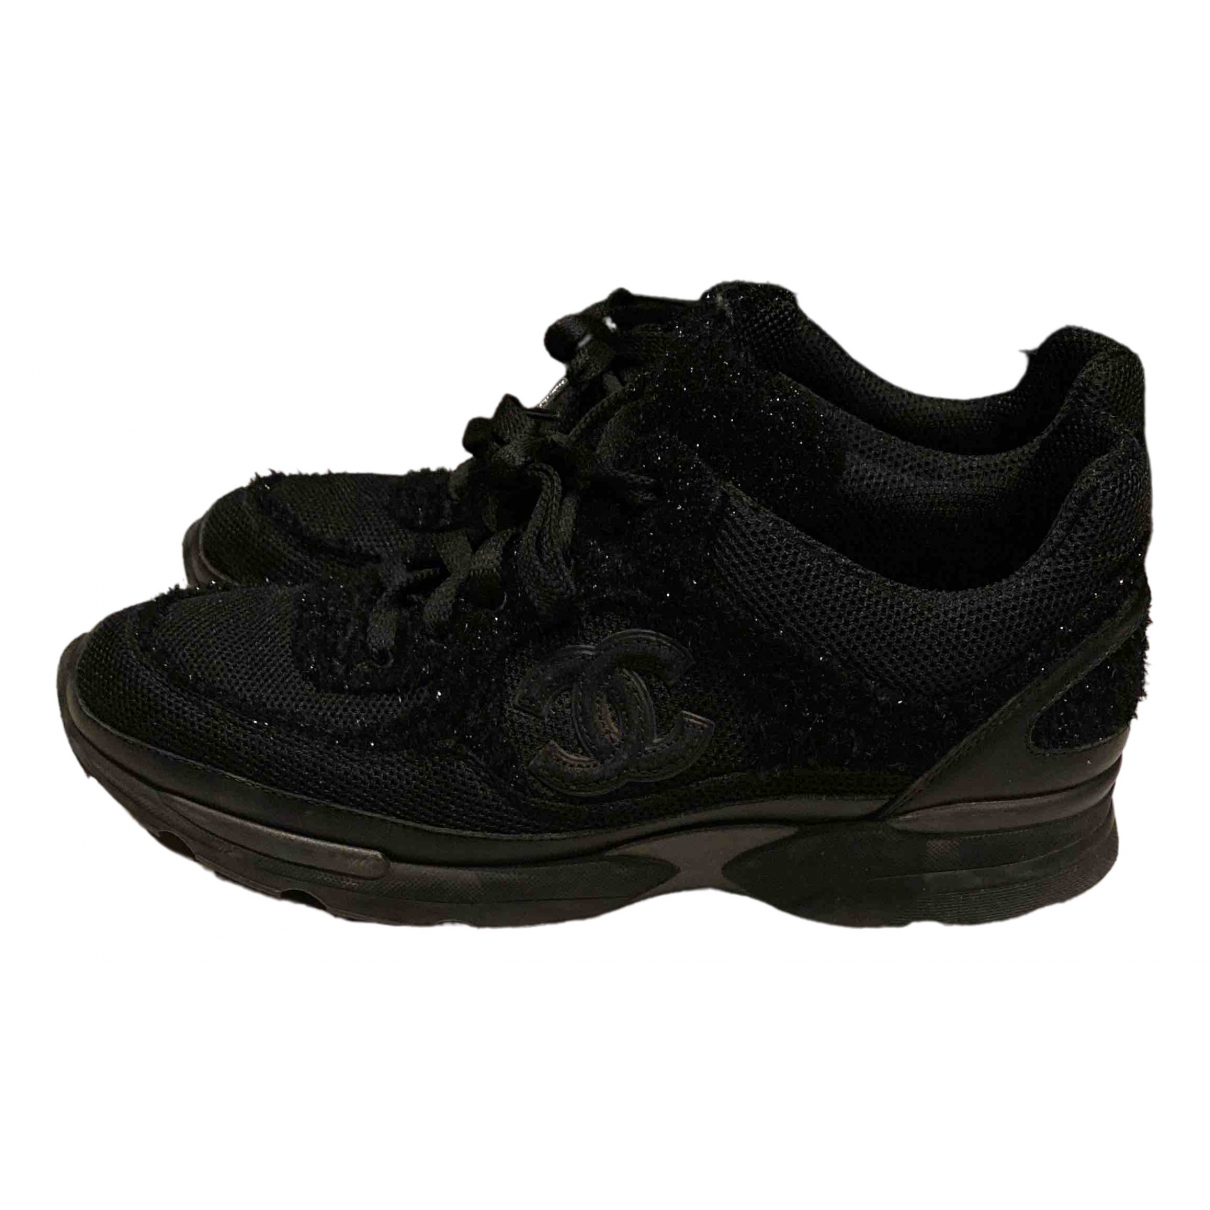 Chanel \N Black Glitter Trainers for Women 40 EU